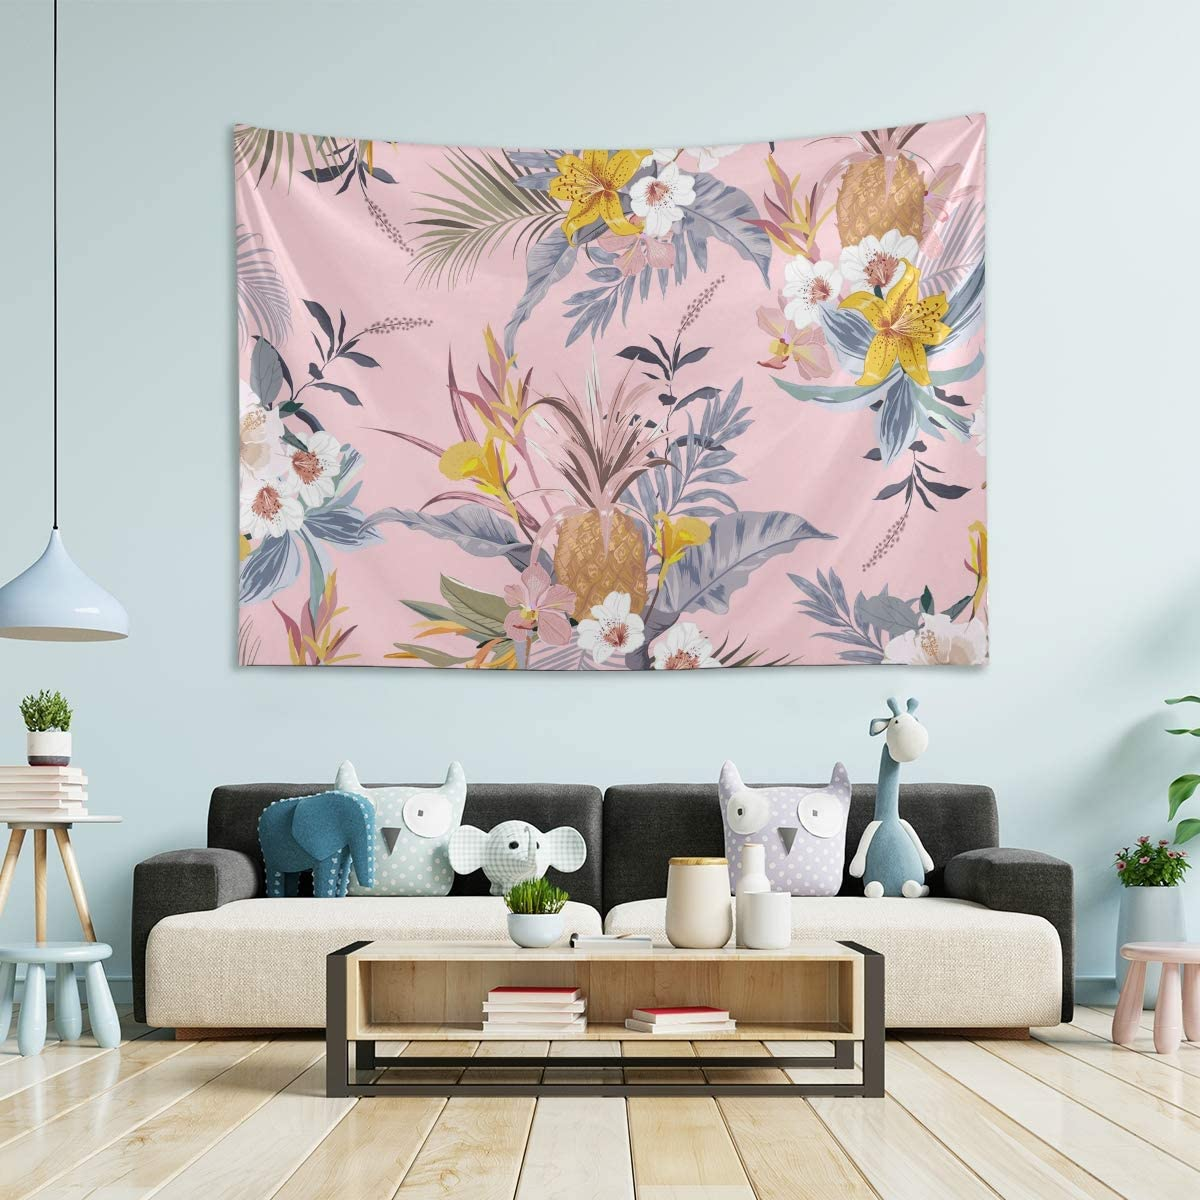 MCHIVER Tapestry Wall Hanging Room Decor - Vintage Tropical Pineapple Flowers Large Wall Tapestry for Bedroom Tapestry Trippy Bedroom Decoration 80x60 Inch